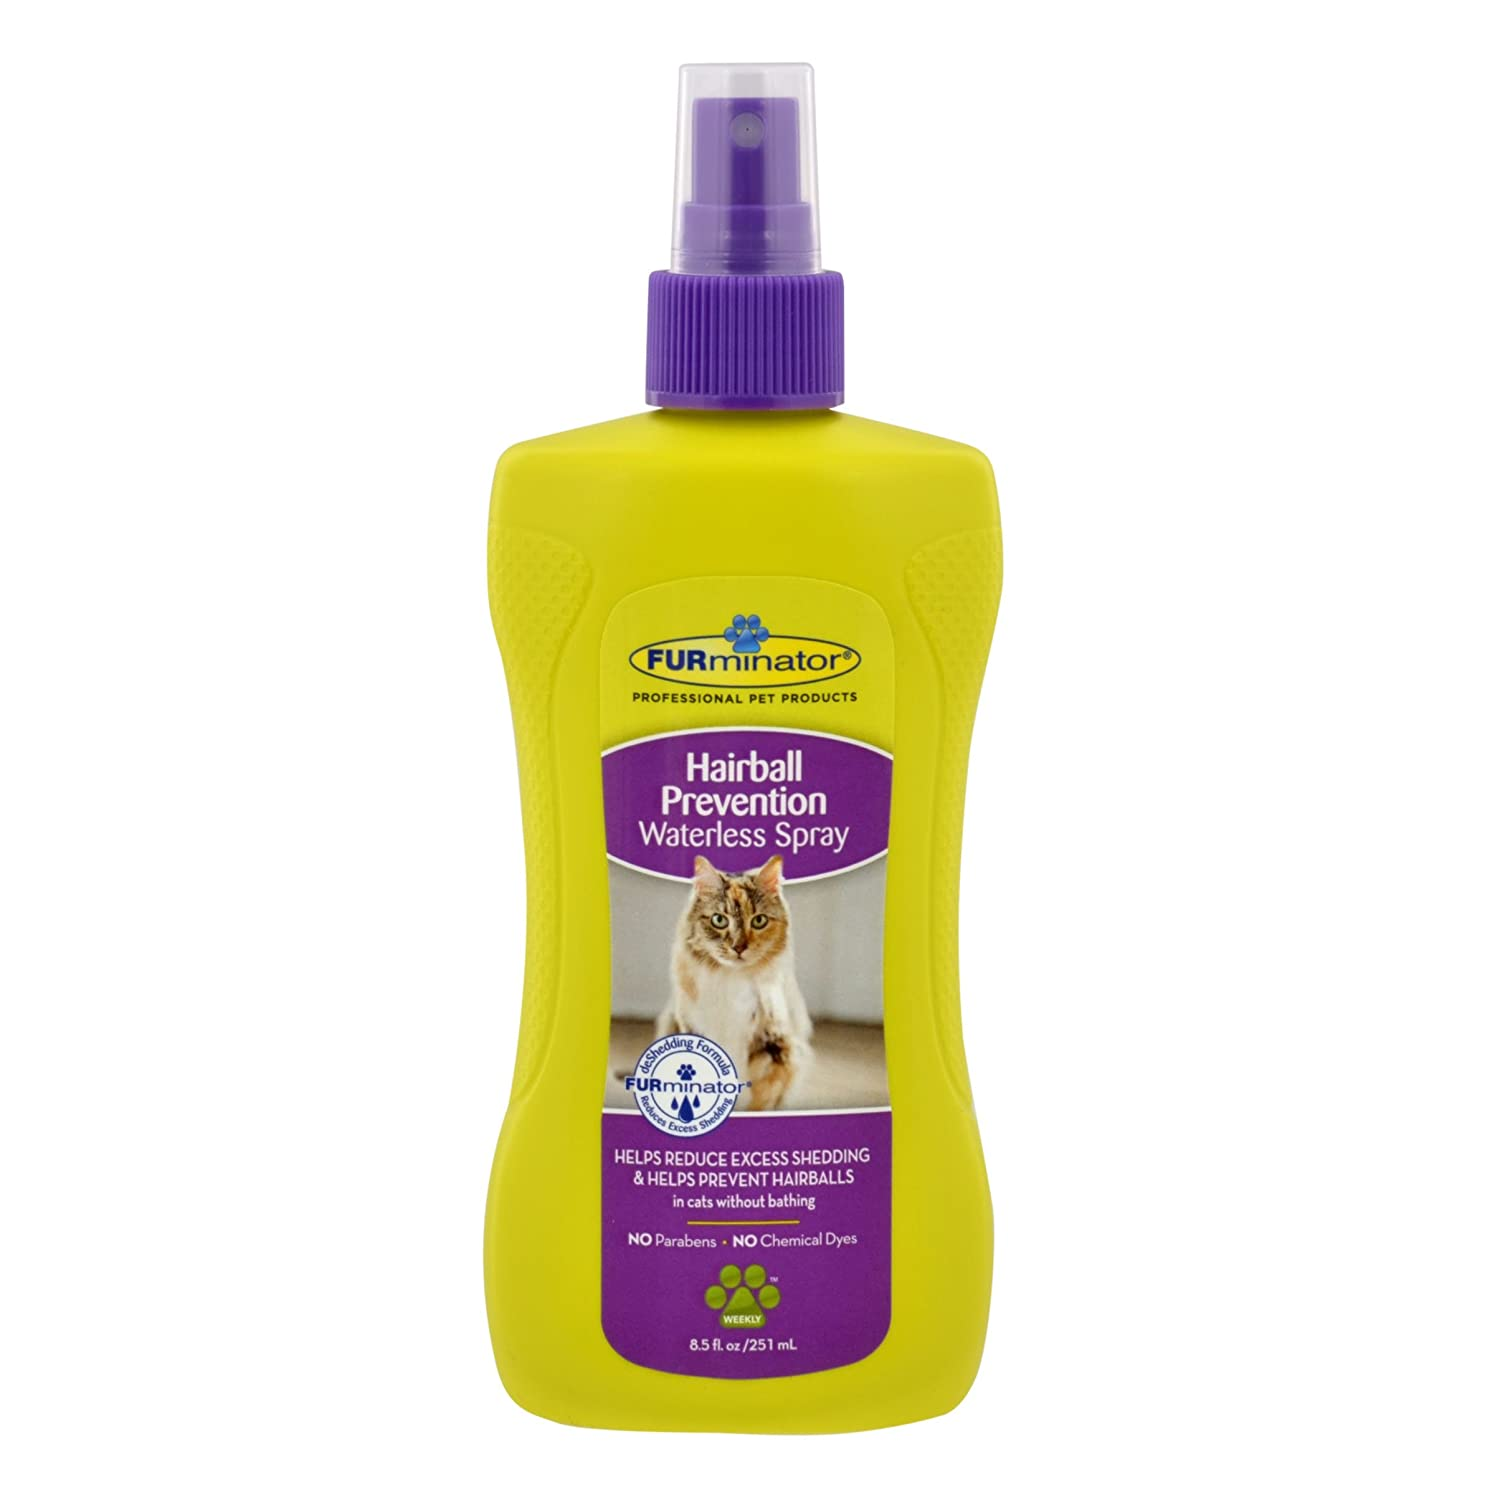 Furminator Hairball Prevención Botellas de Spray para Gatos: Amazon.es: Productos para mascotas